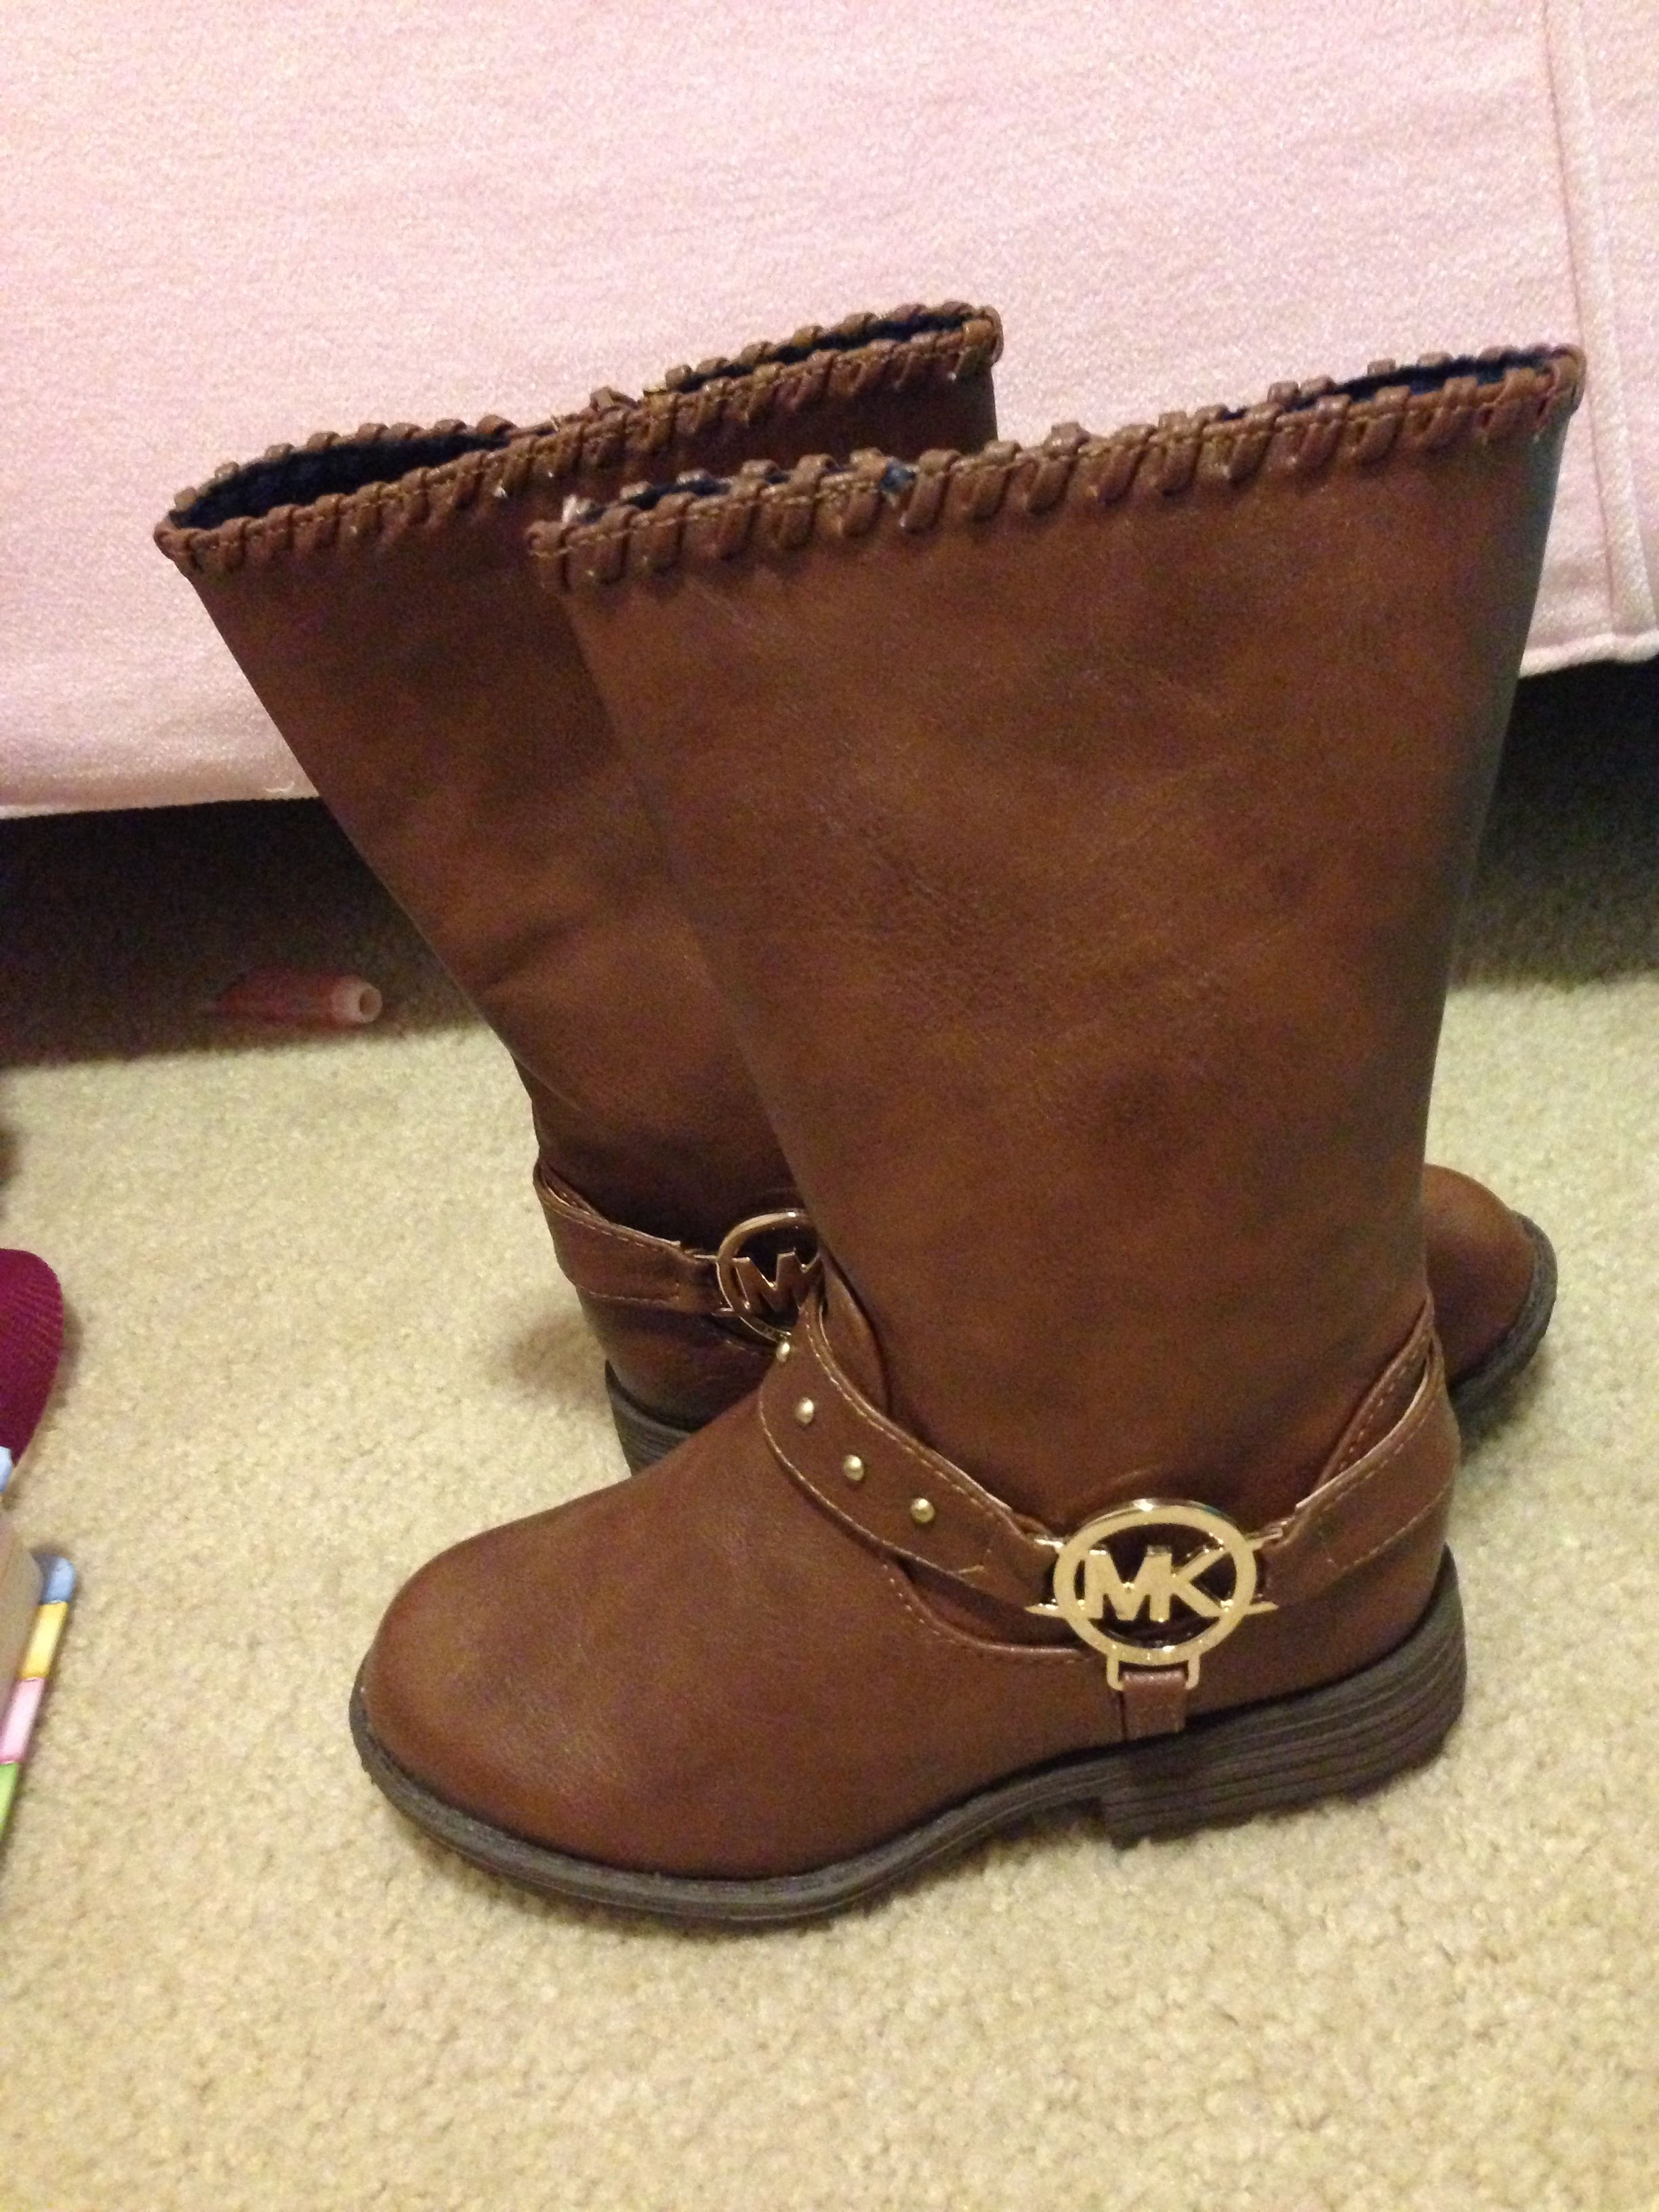 Lake s new MK boots MK Pinterest